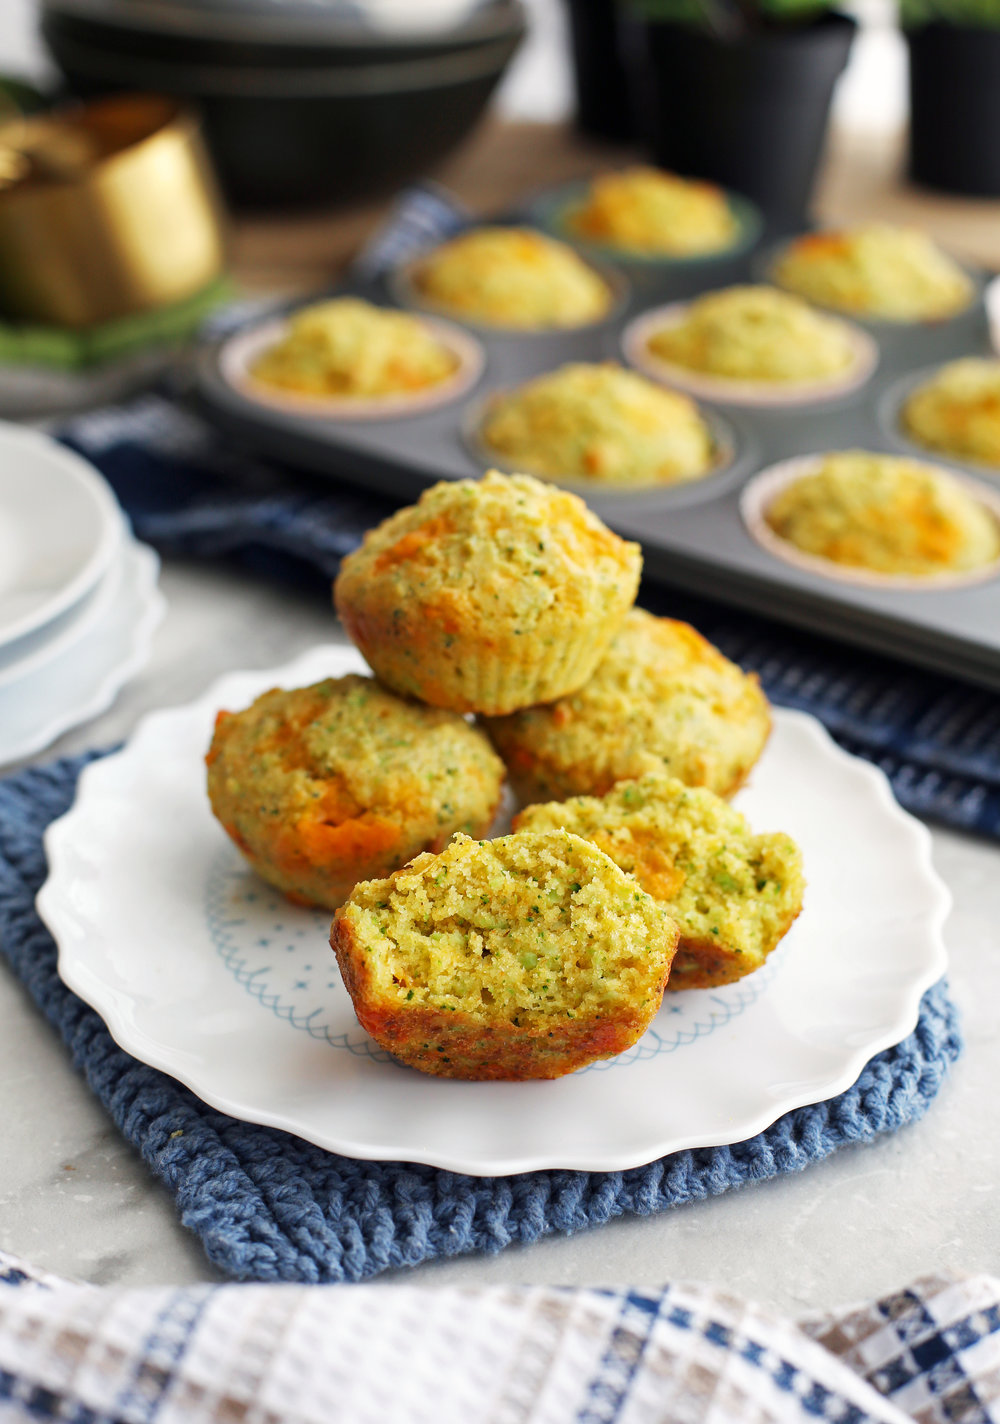 Four Broccoli Cheddar Cornbread Muffins with one cut in half on a white plate with more in a muffin pan behind them.